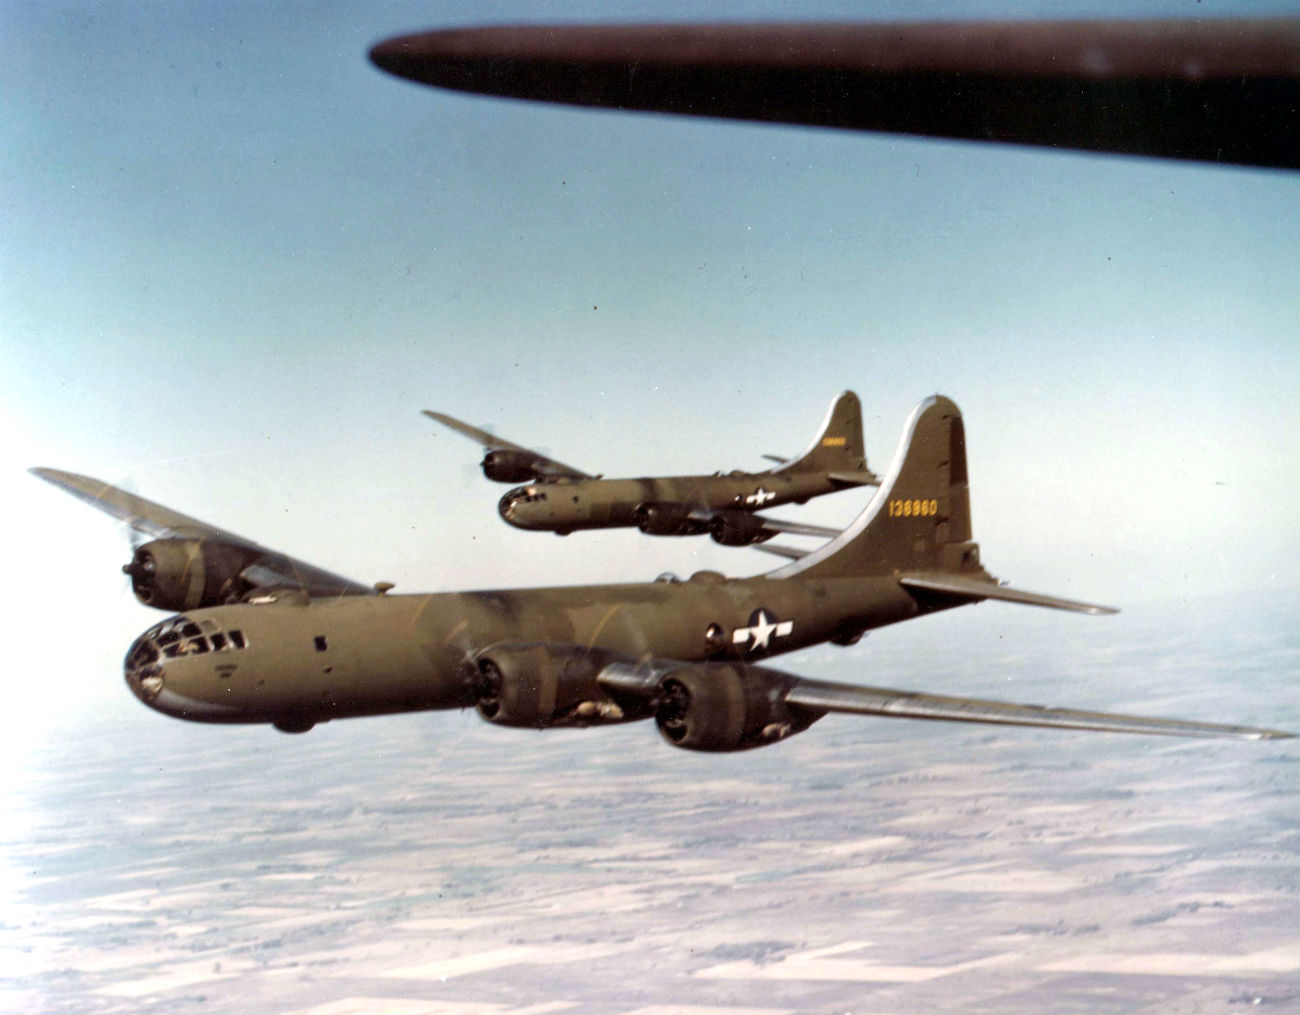 B-29 Superfortress images WW2 Aircraft